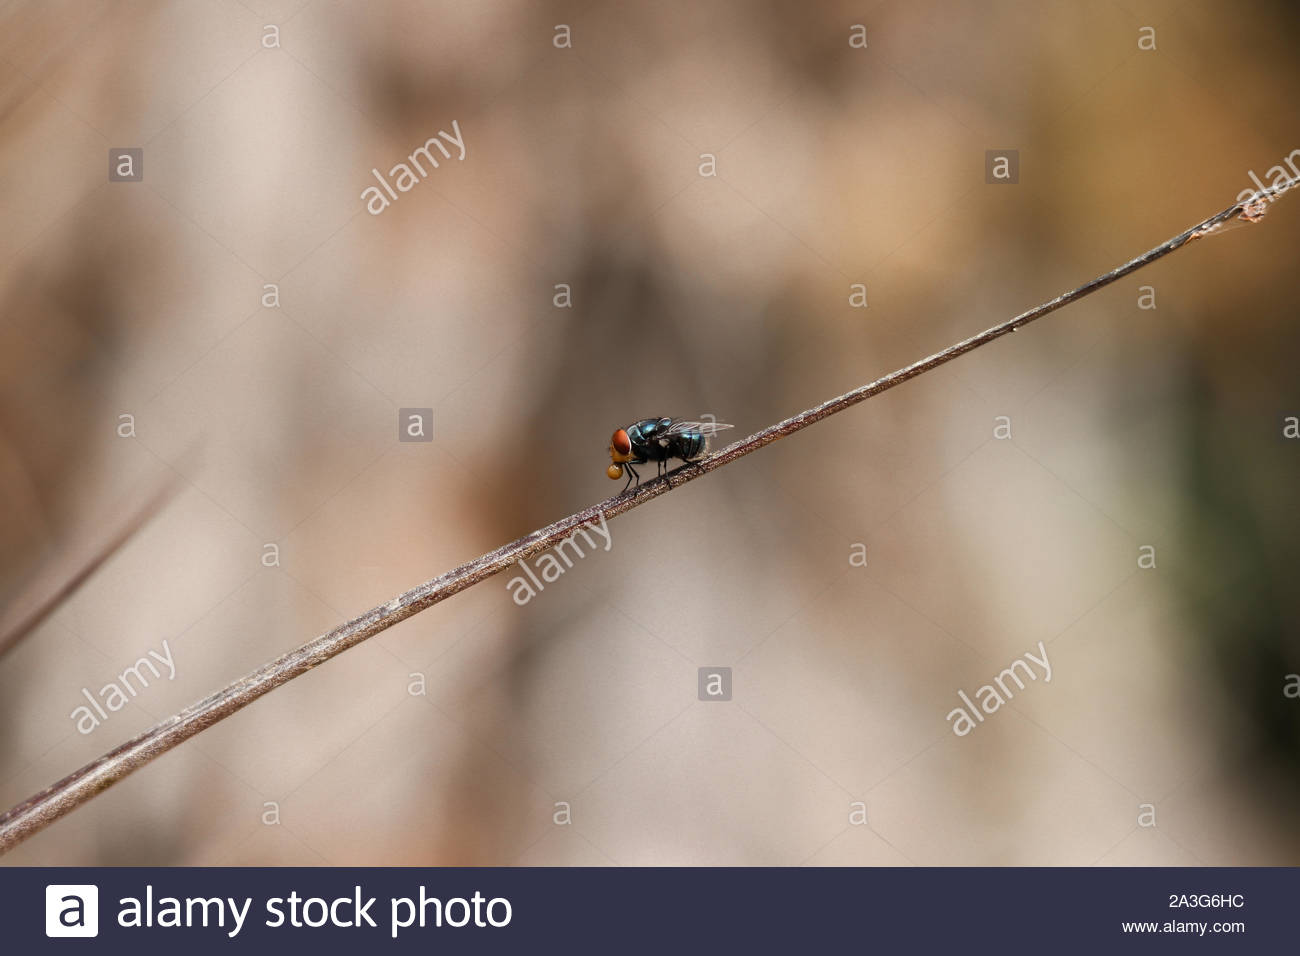 Captured a fly having a bubble gum Stock Photo